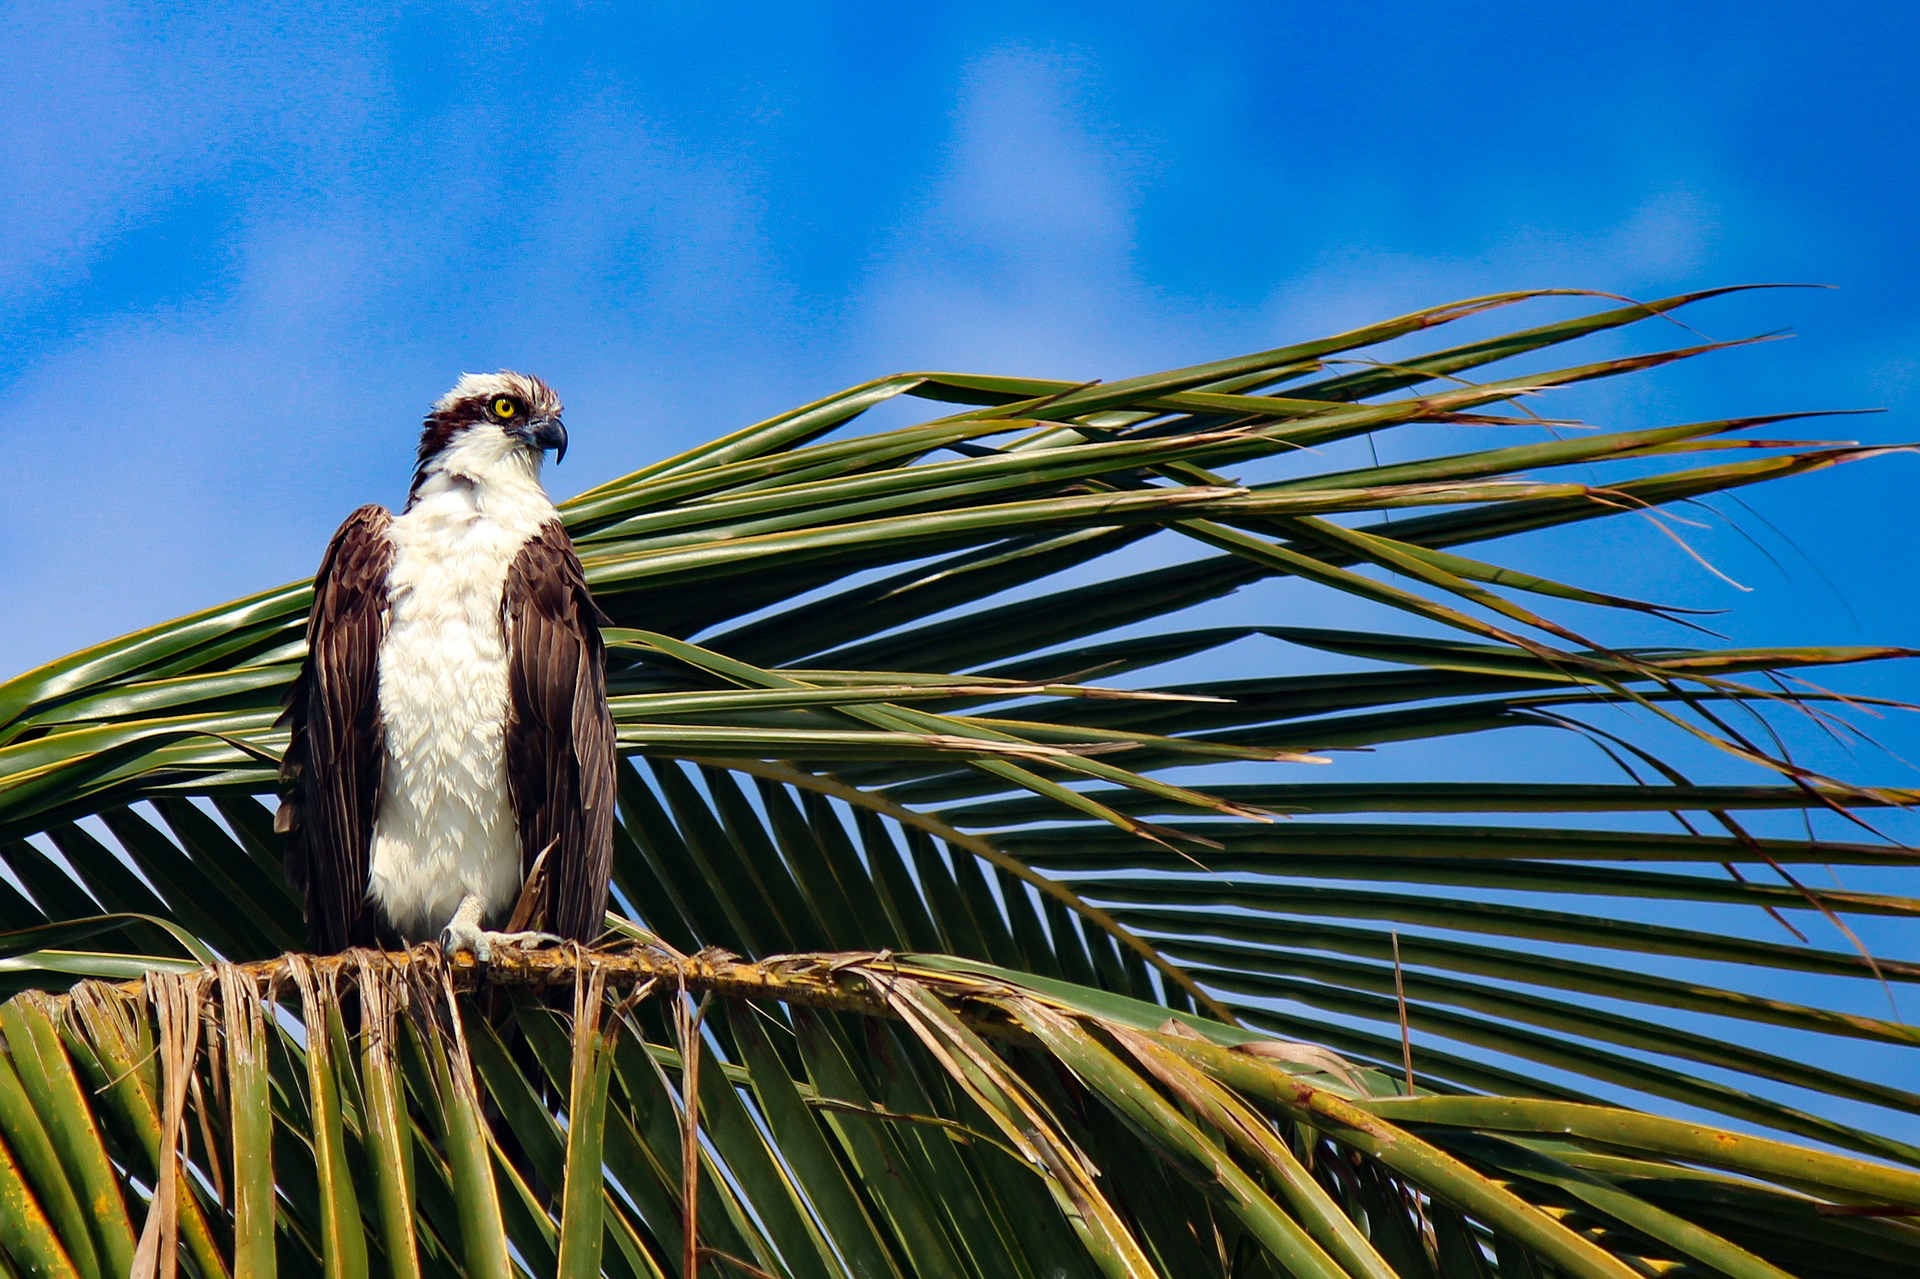 An osprey sitting on a palm tree frond